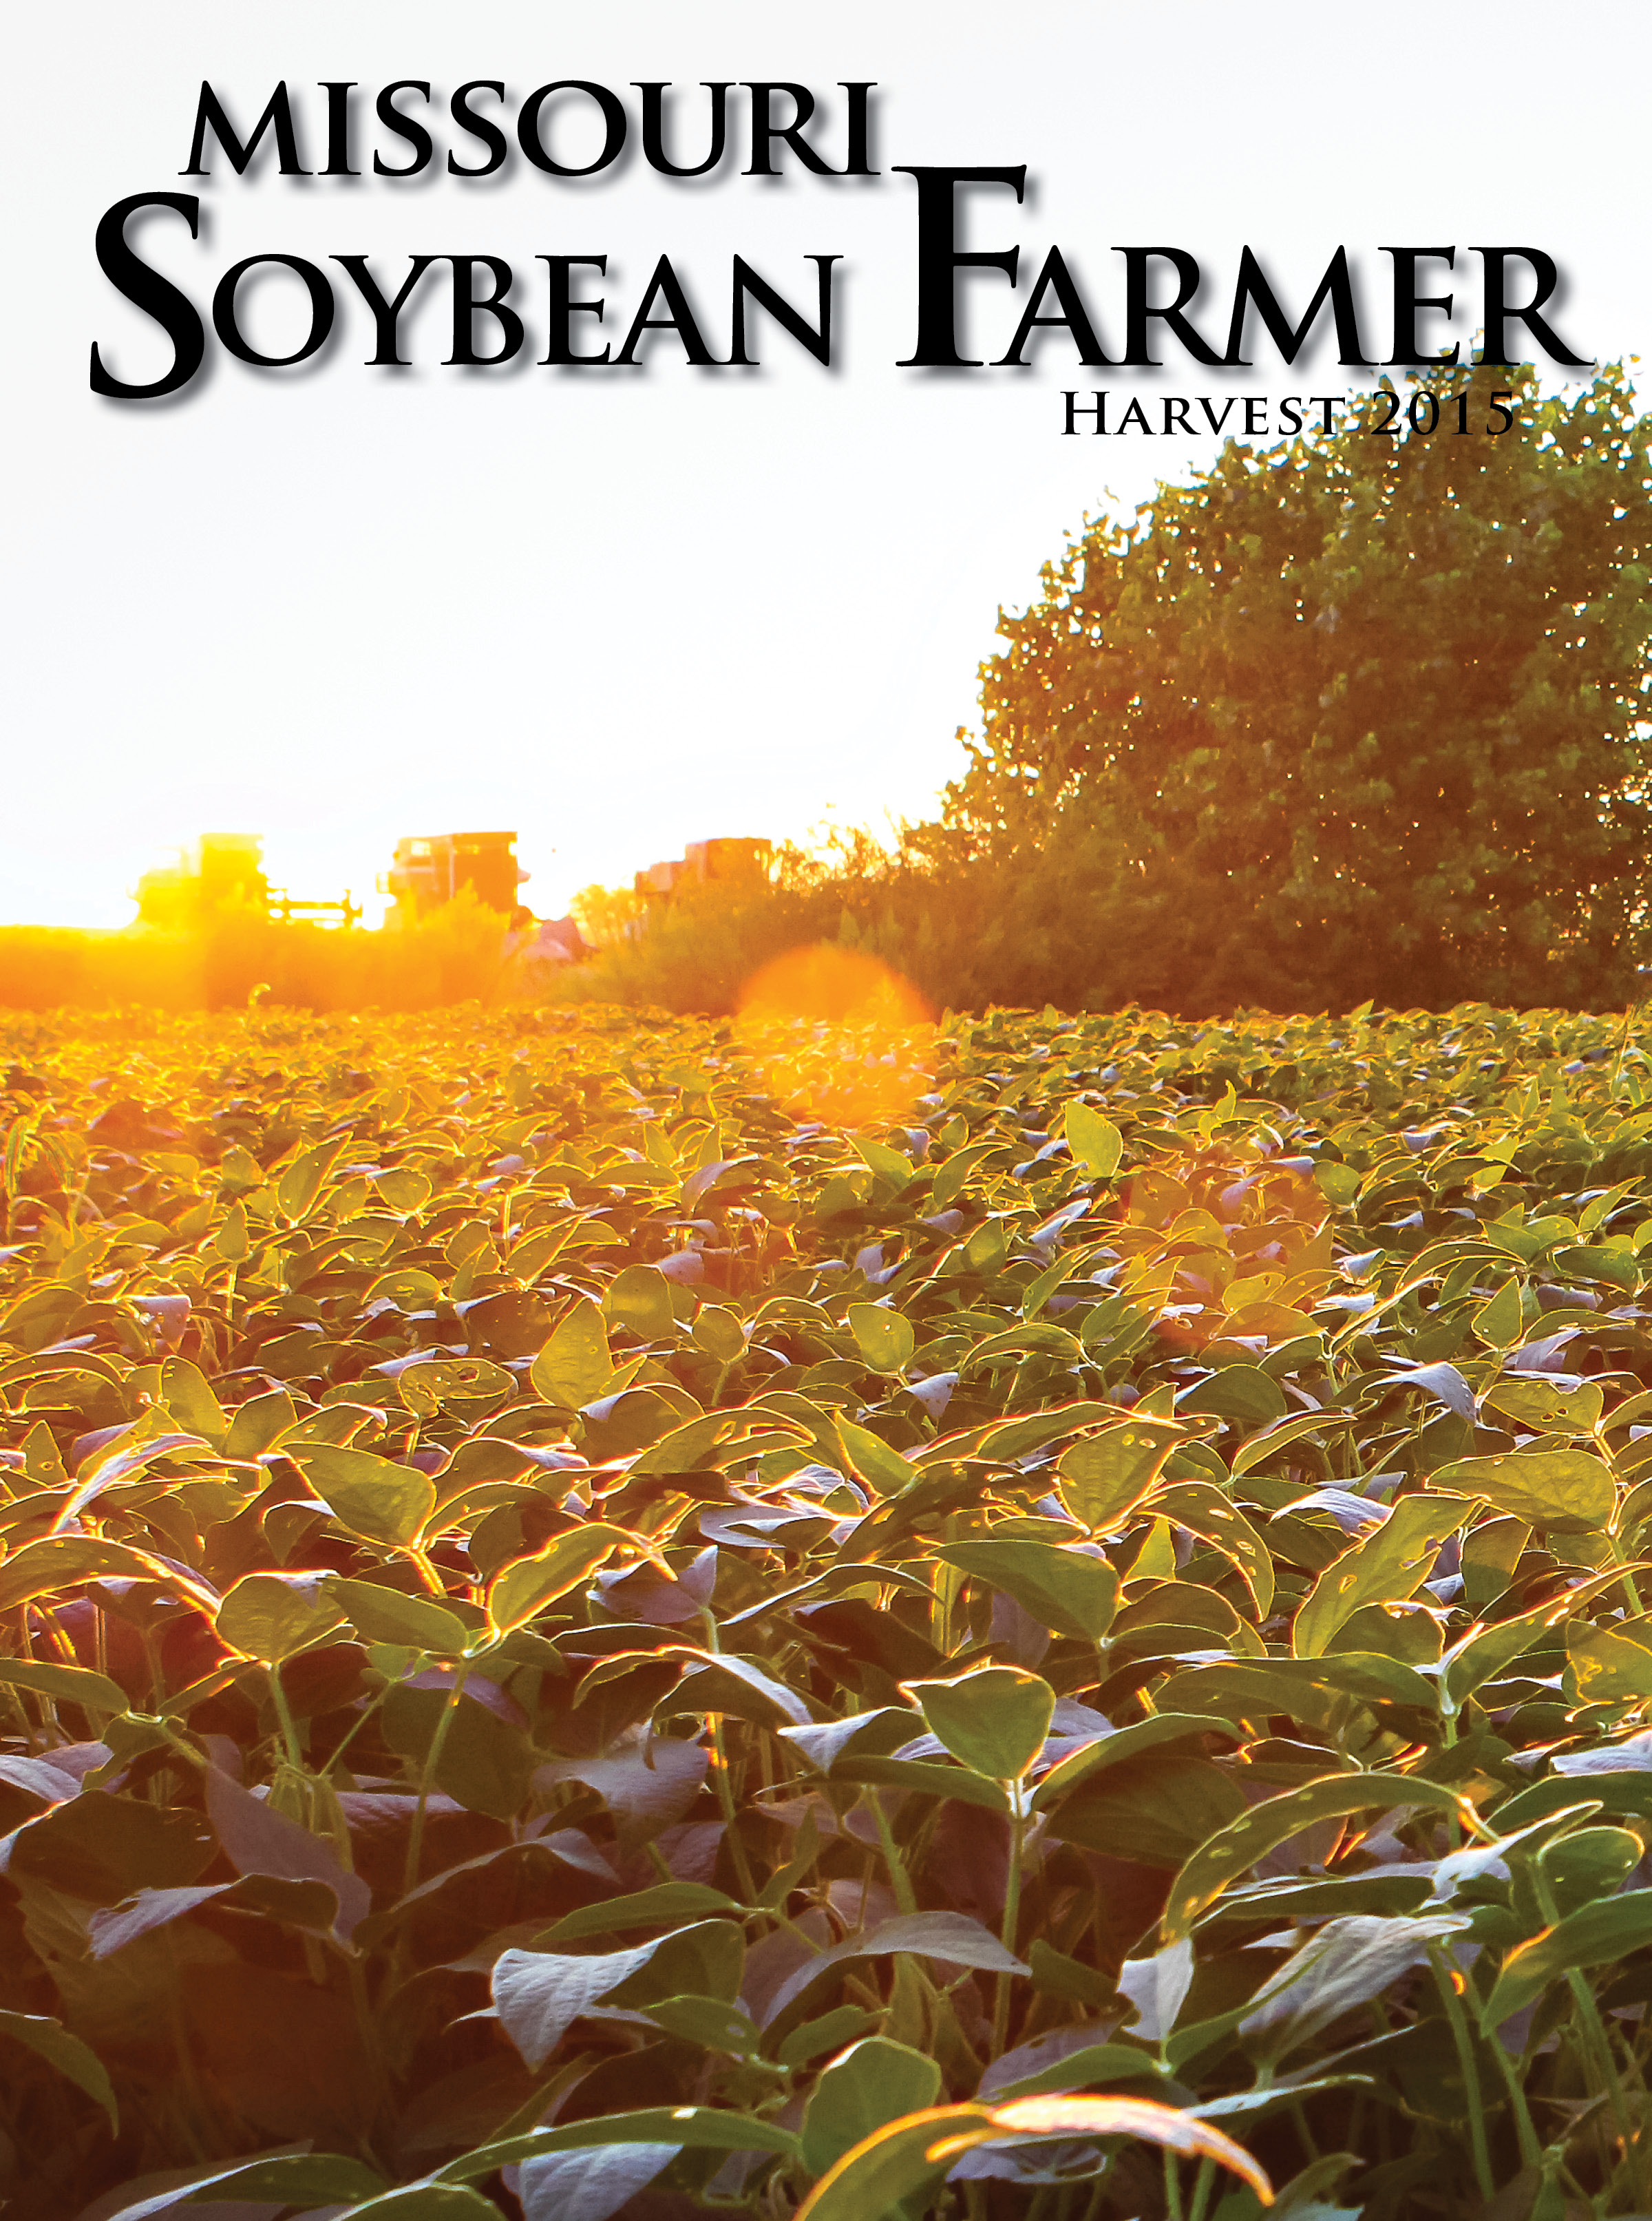 Harvest 2015 Issue of Missouri Soybean Farmer Available Now